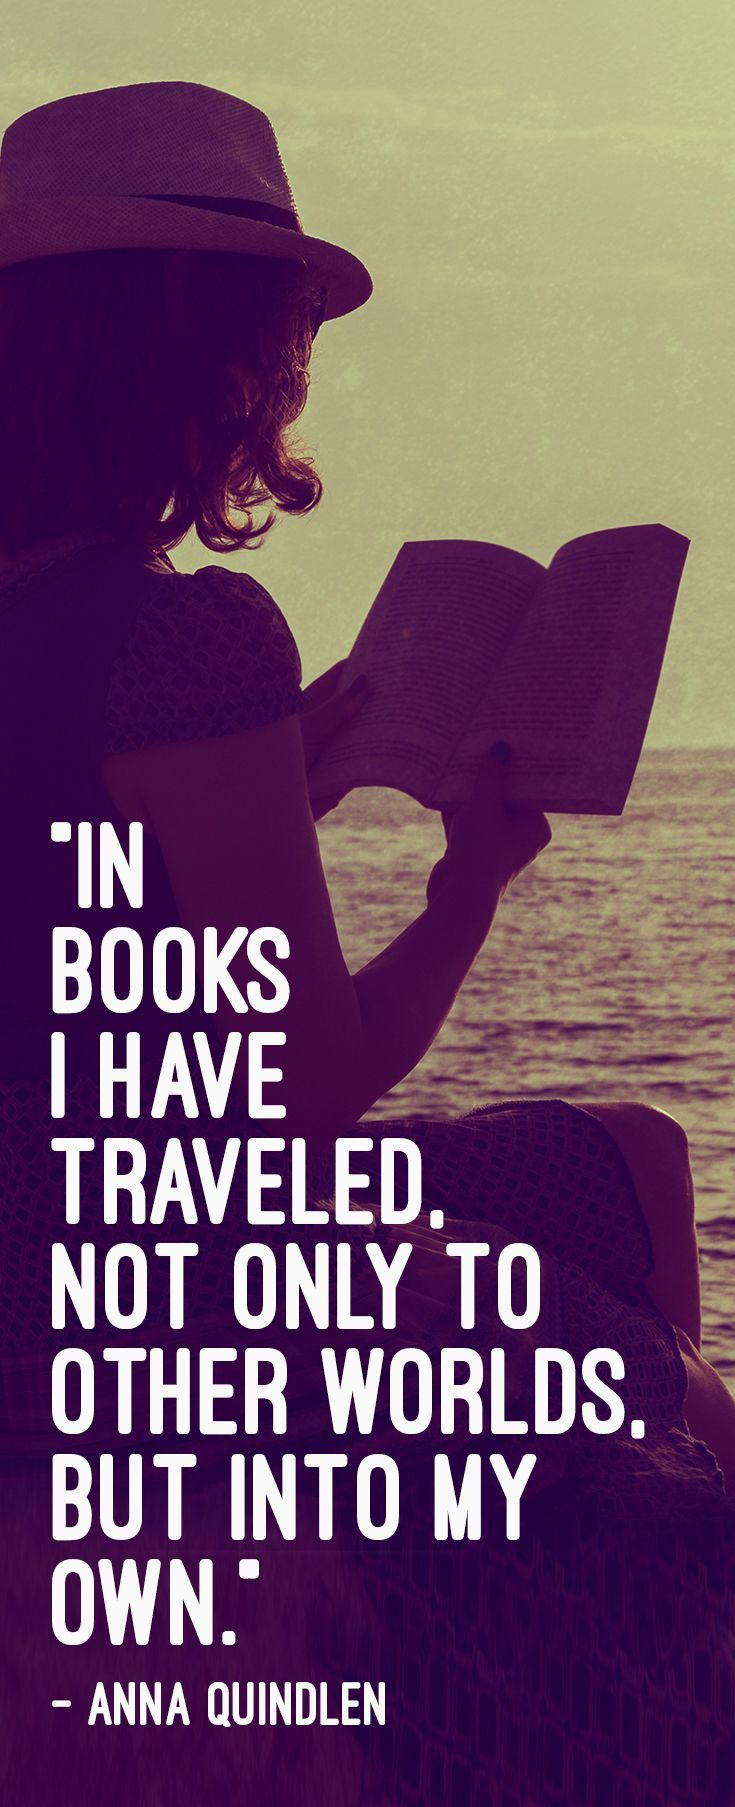 21 Bookish Quotes For A Rainy Day Quotes Famous Book Quotes